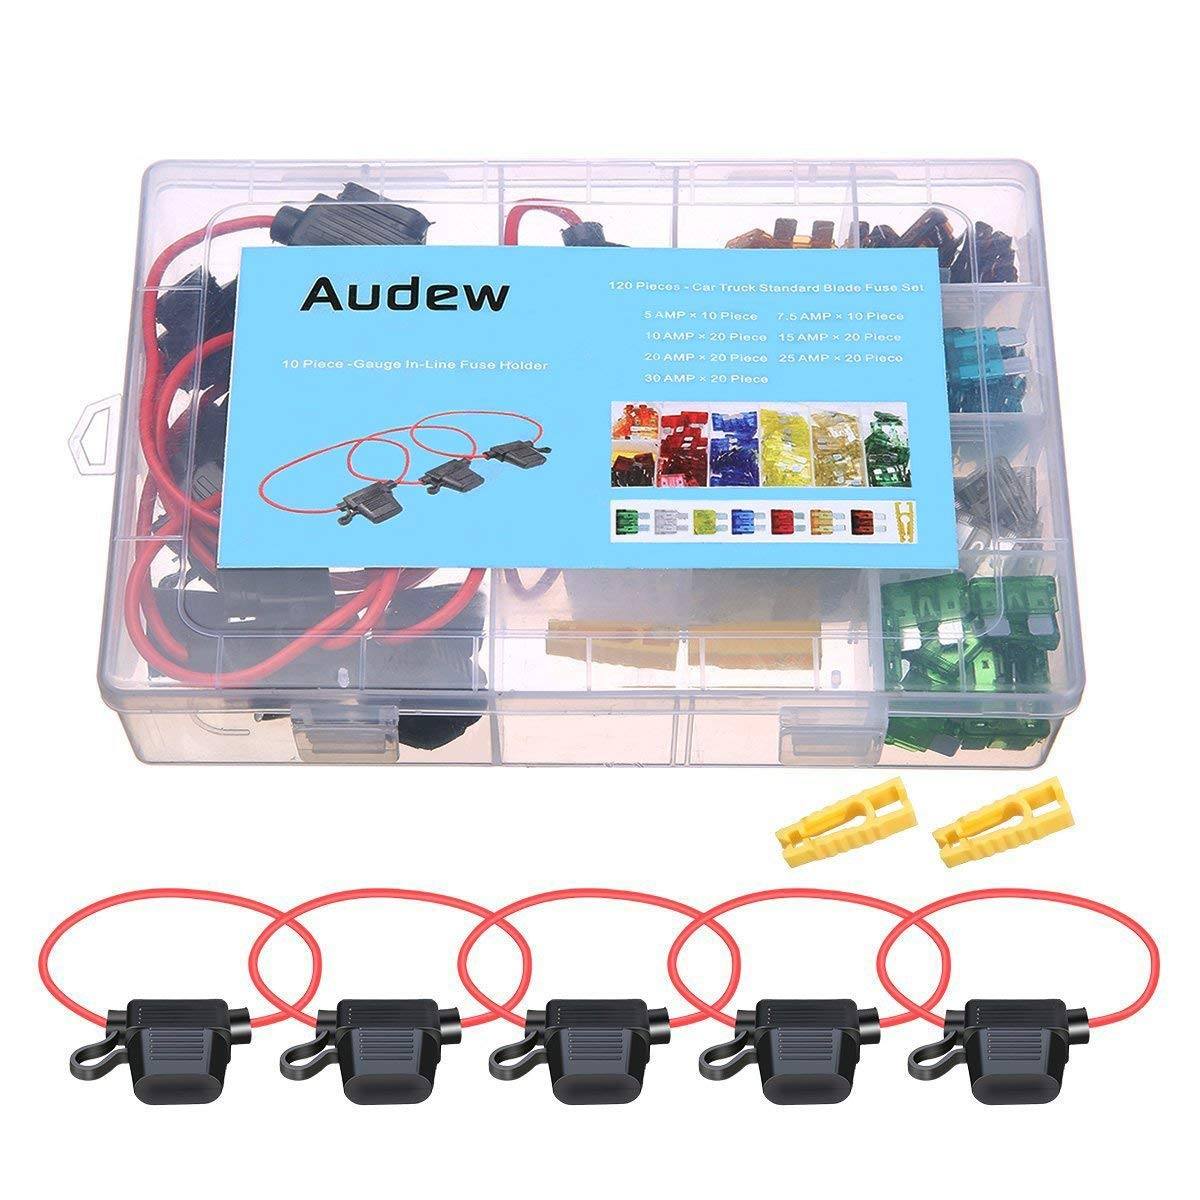 AUDEW Car Blade Fuse Set 120pcs Standard Assorted Fuses + 10 Inline Fuse Holders Automotive Replacement Fuses for Car Truck SUV RV Boat (5/7.5/10/15/20/25/30 AMP)